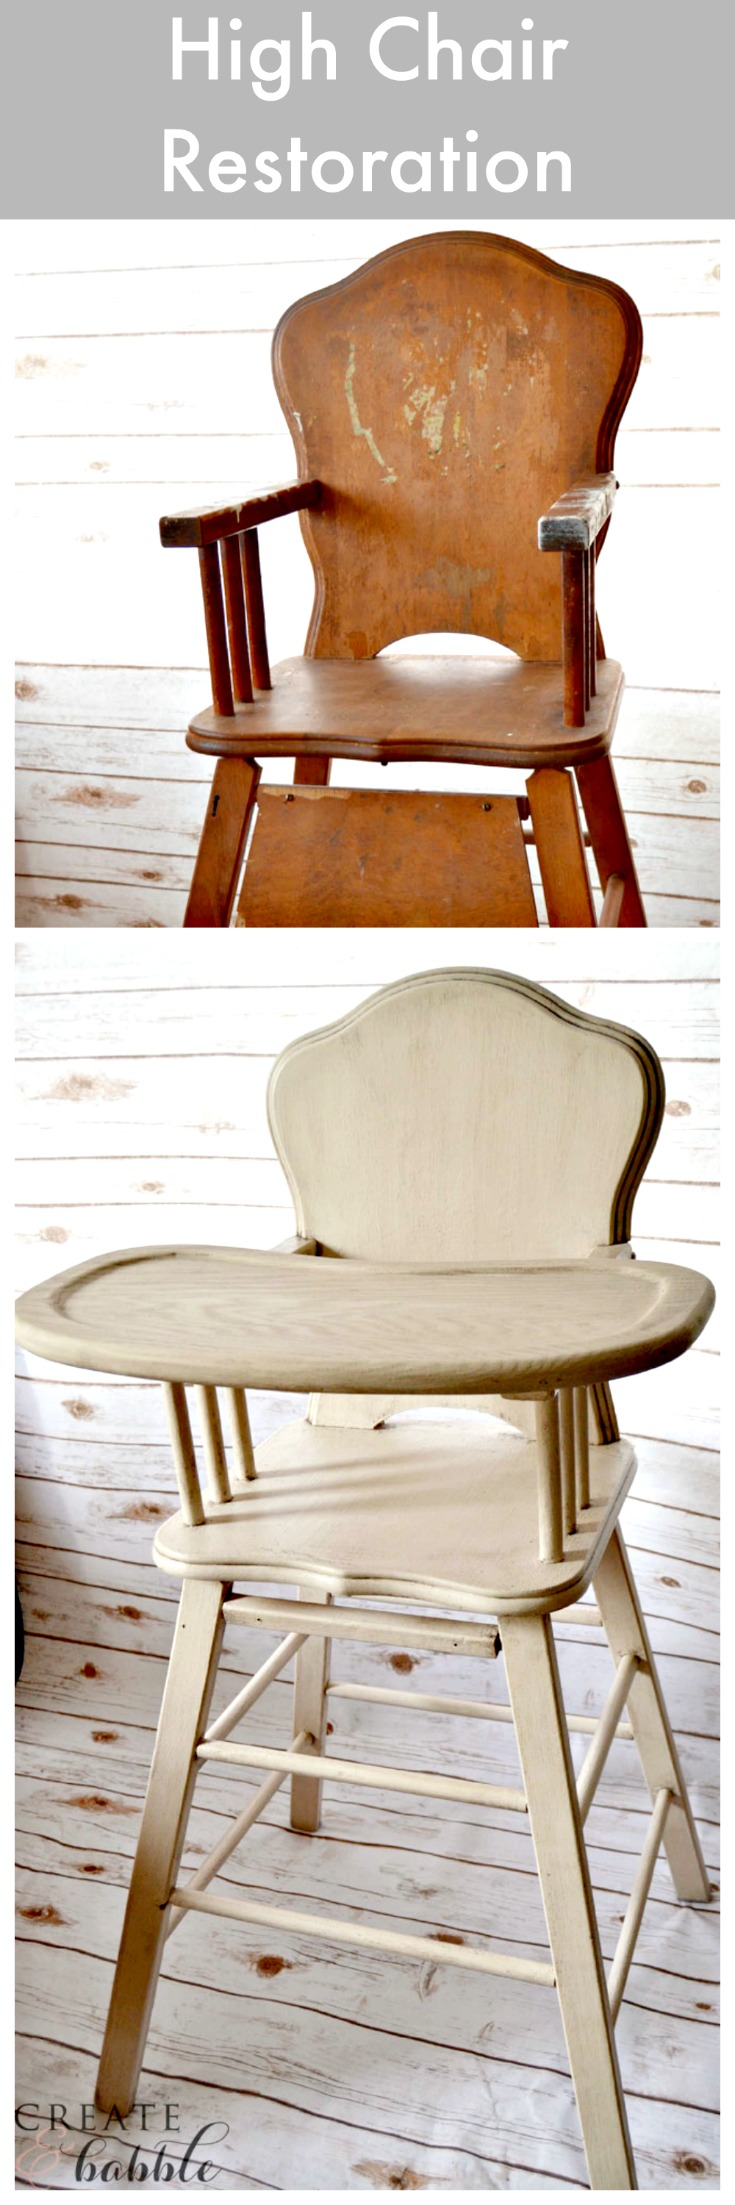 I restored my old high chair with products from the Amy Howard at Home line. I gave it a Toscana finish by layering Toscana Milk Paint in Noir over One Step Paint in Linen. The aged appearance was achieved with the use of furniture glaze.